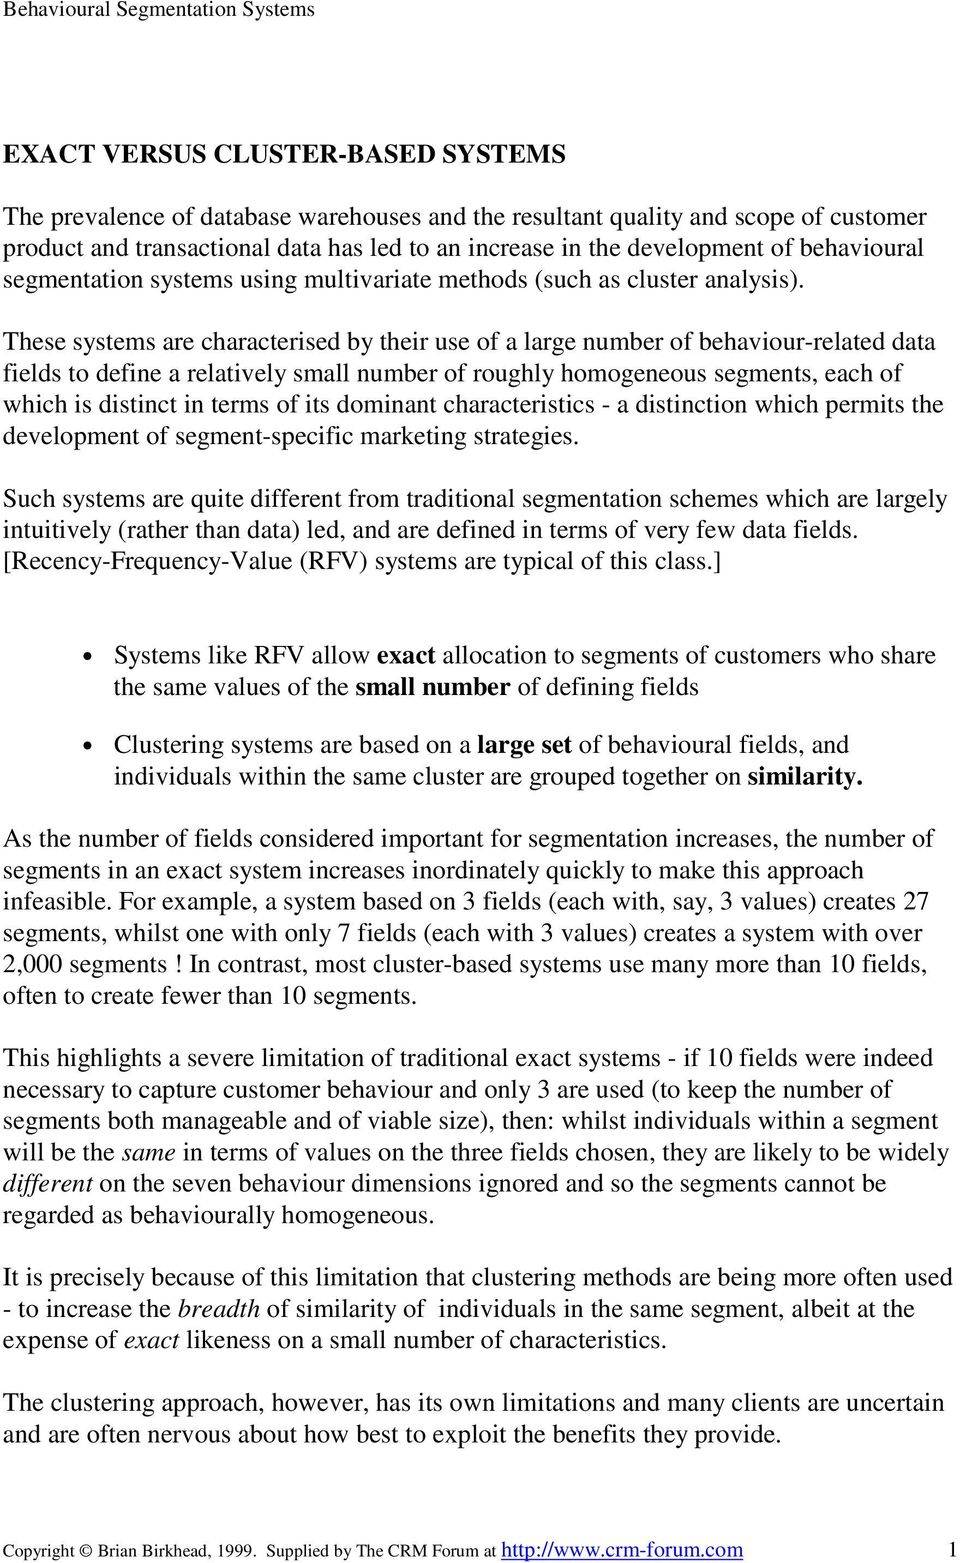 These systems are characterised by their use of a large number of behaviour-related data fields to define a relatively small number of roughly homogeneous segments, each of which is distinct in terms